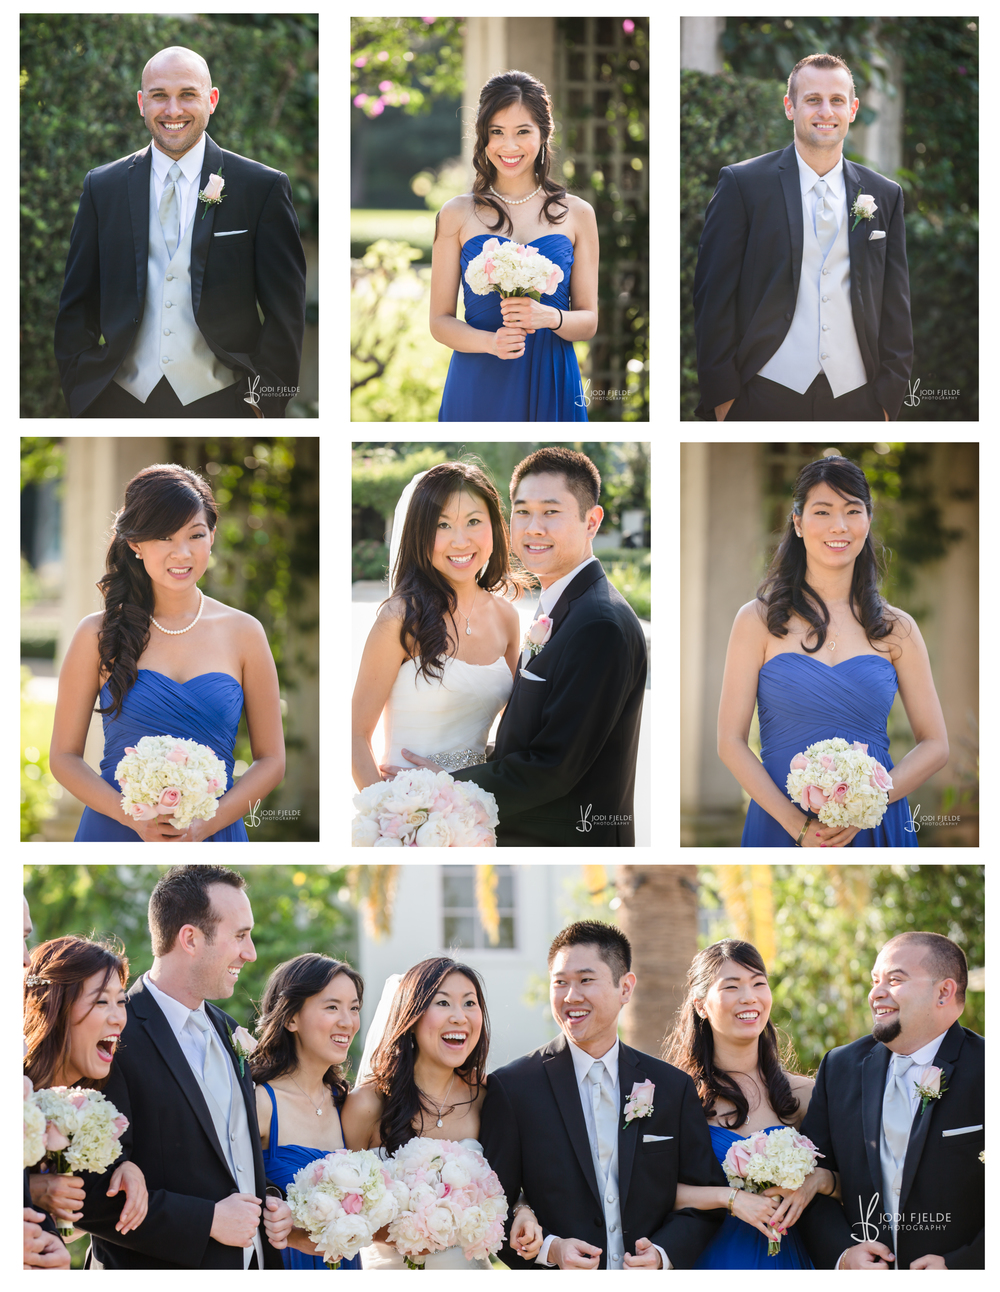 Lake_Pavilion_Wedding_West_Palm_Beach_Jodi_Fjelde_Photography_Betty_Alex_Sociaety_Of_Four _Arts_10.jpg